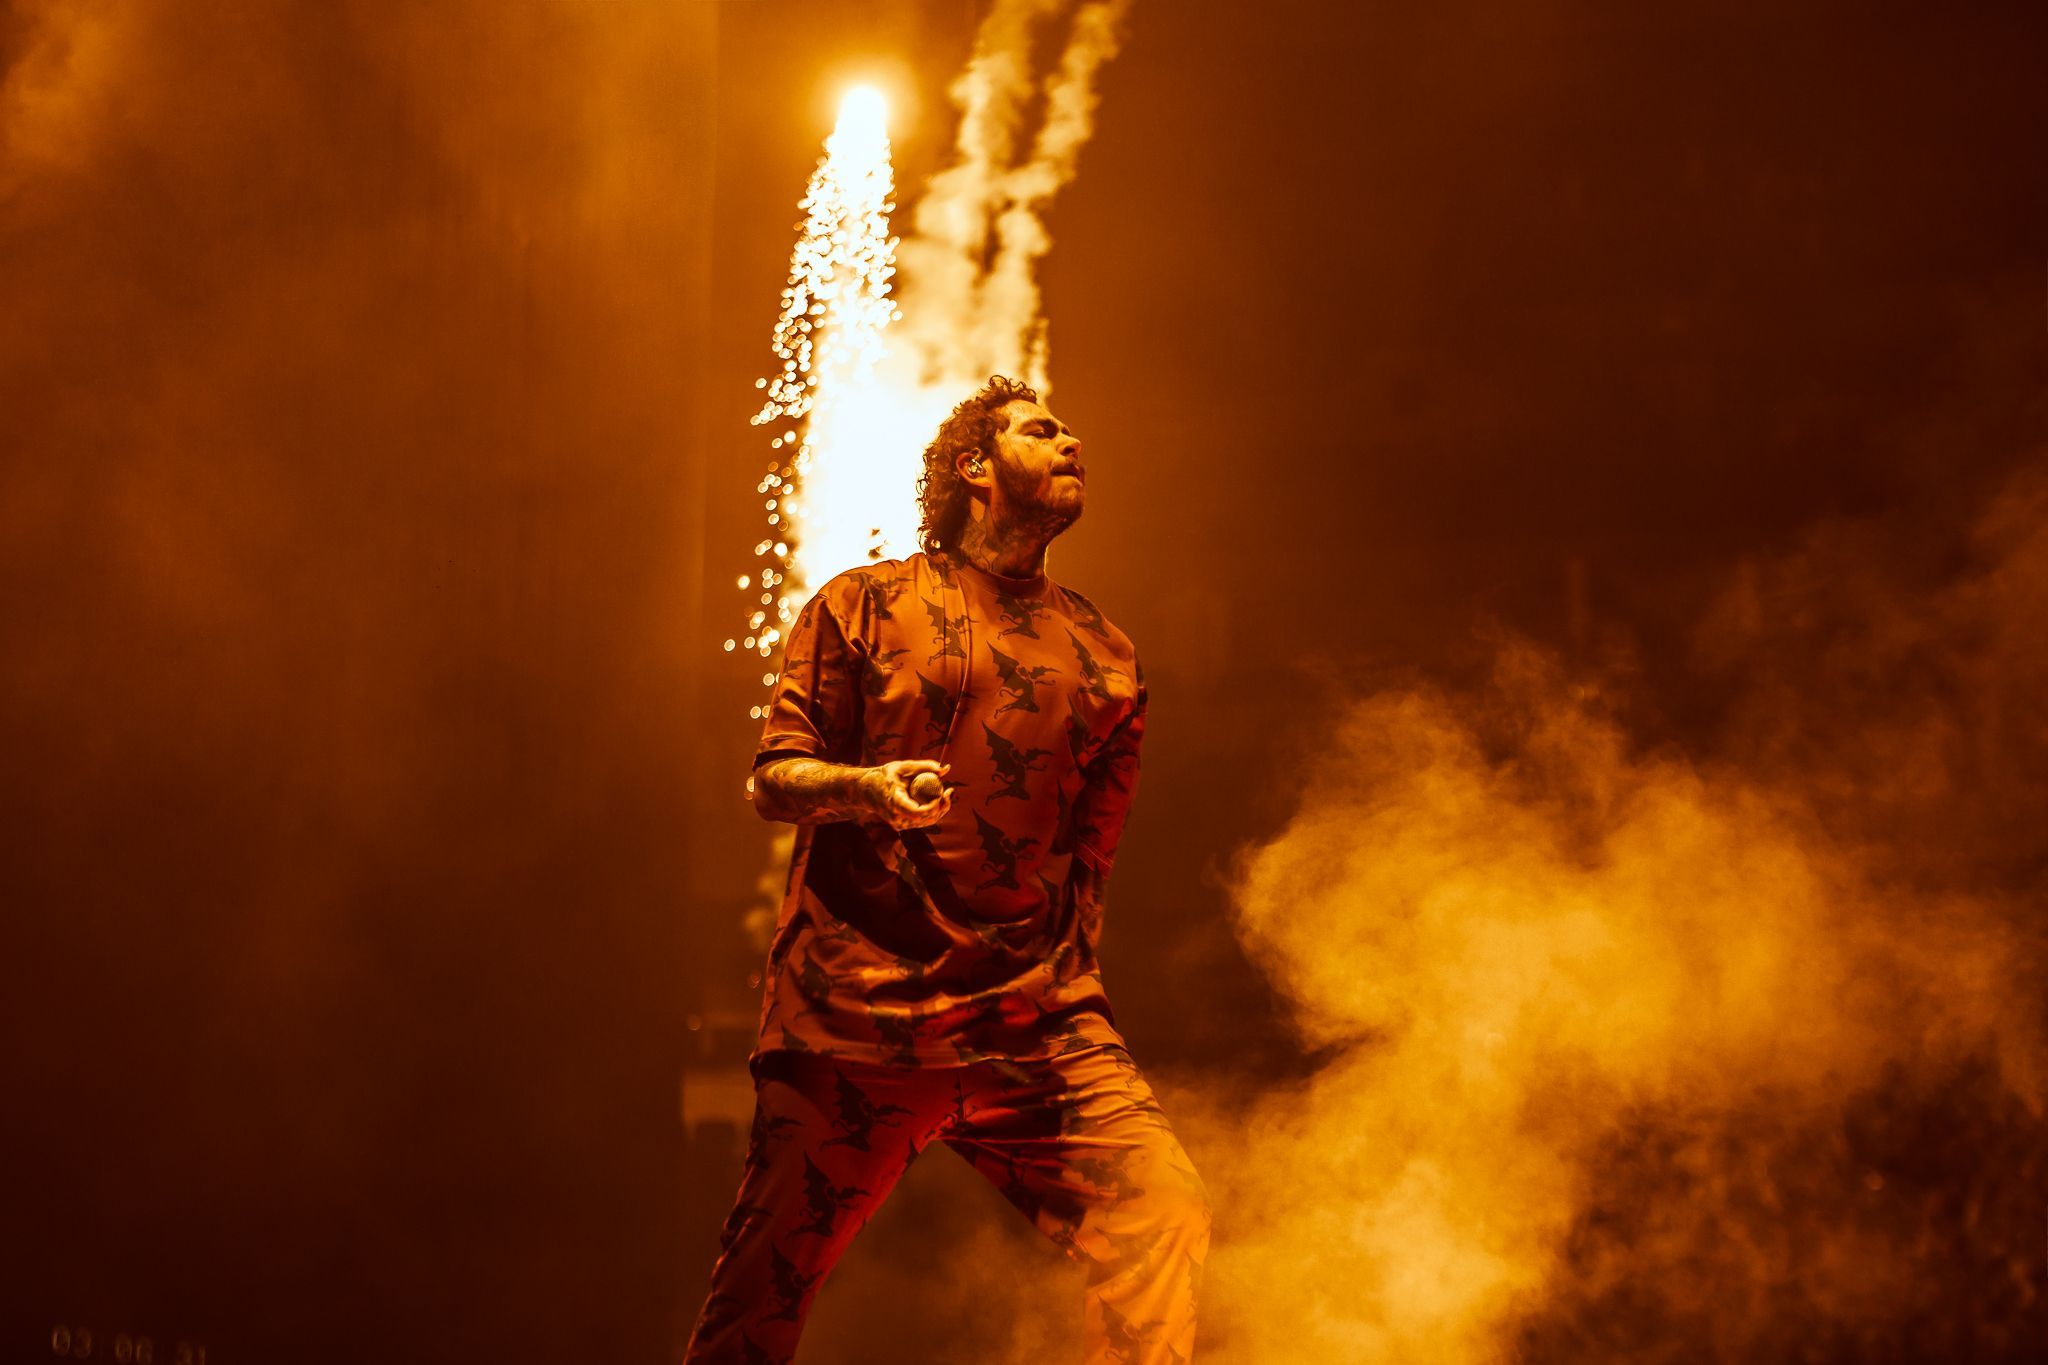 Review – Post Malone Threw A Party Fit For A Rockstar At The Pepsi Center #postmalone #postmalonewallpaper #postmalonewallpaper Review – Post Malone Threw A Party Fit For A Rockstar At The Pepsi Center #postmalone #postmalonewallpaper #postmalonewallpaper